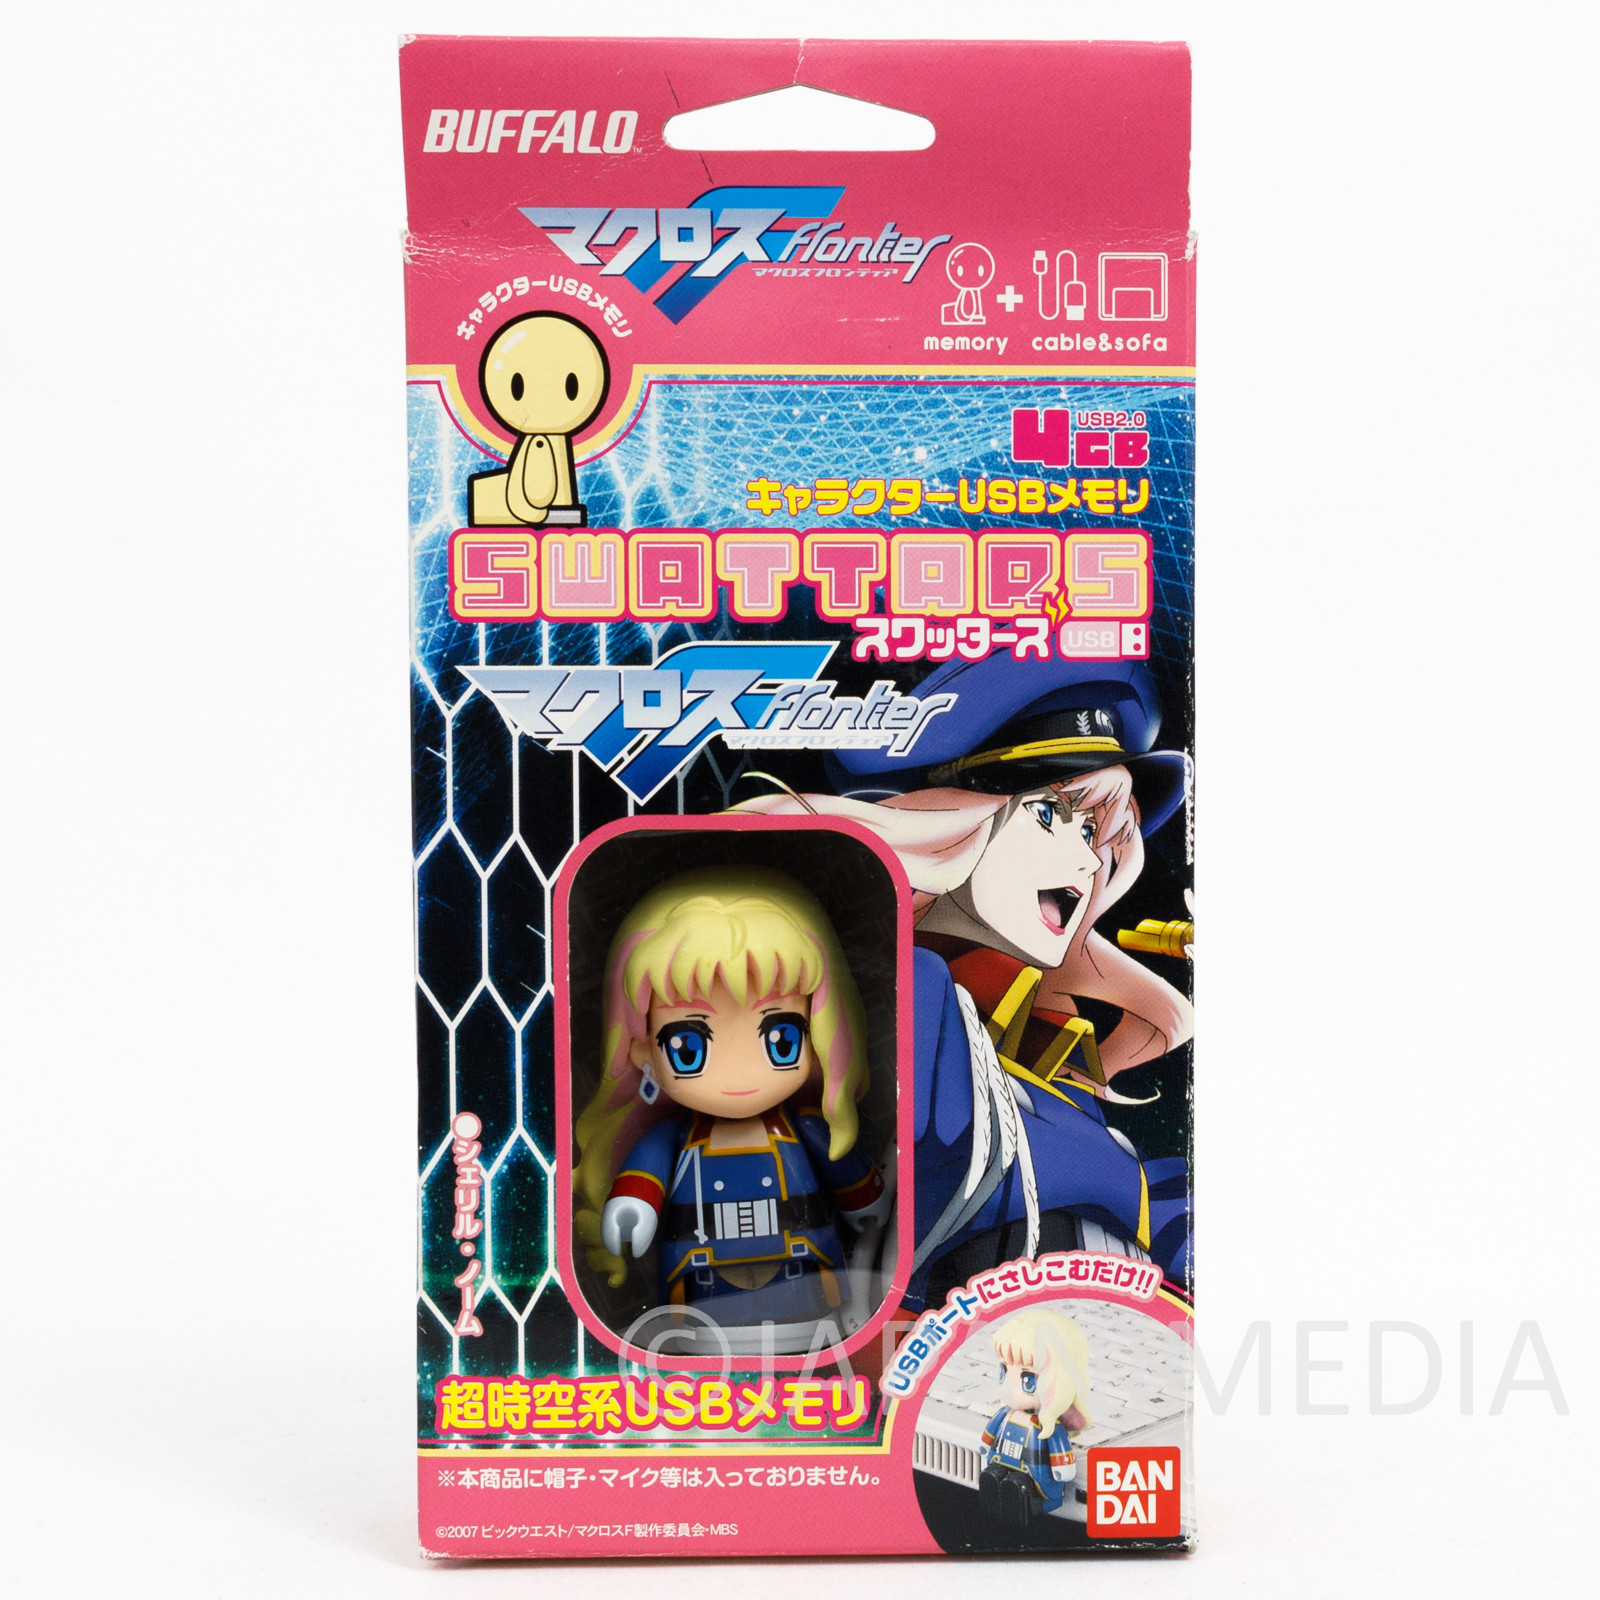 Macross Frontier Sheryl Nome Figure Type USB Flash Memory 4GB Buffalo